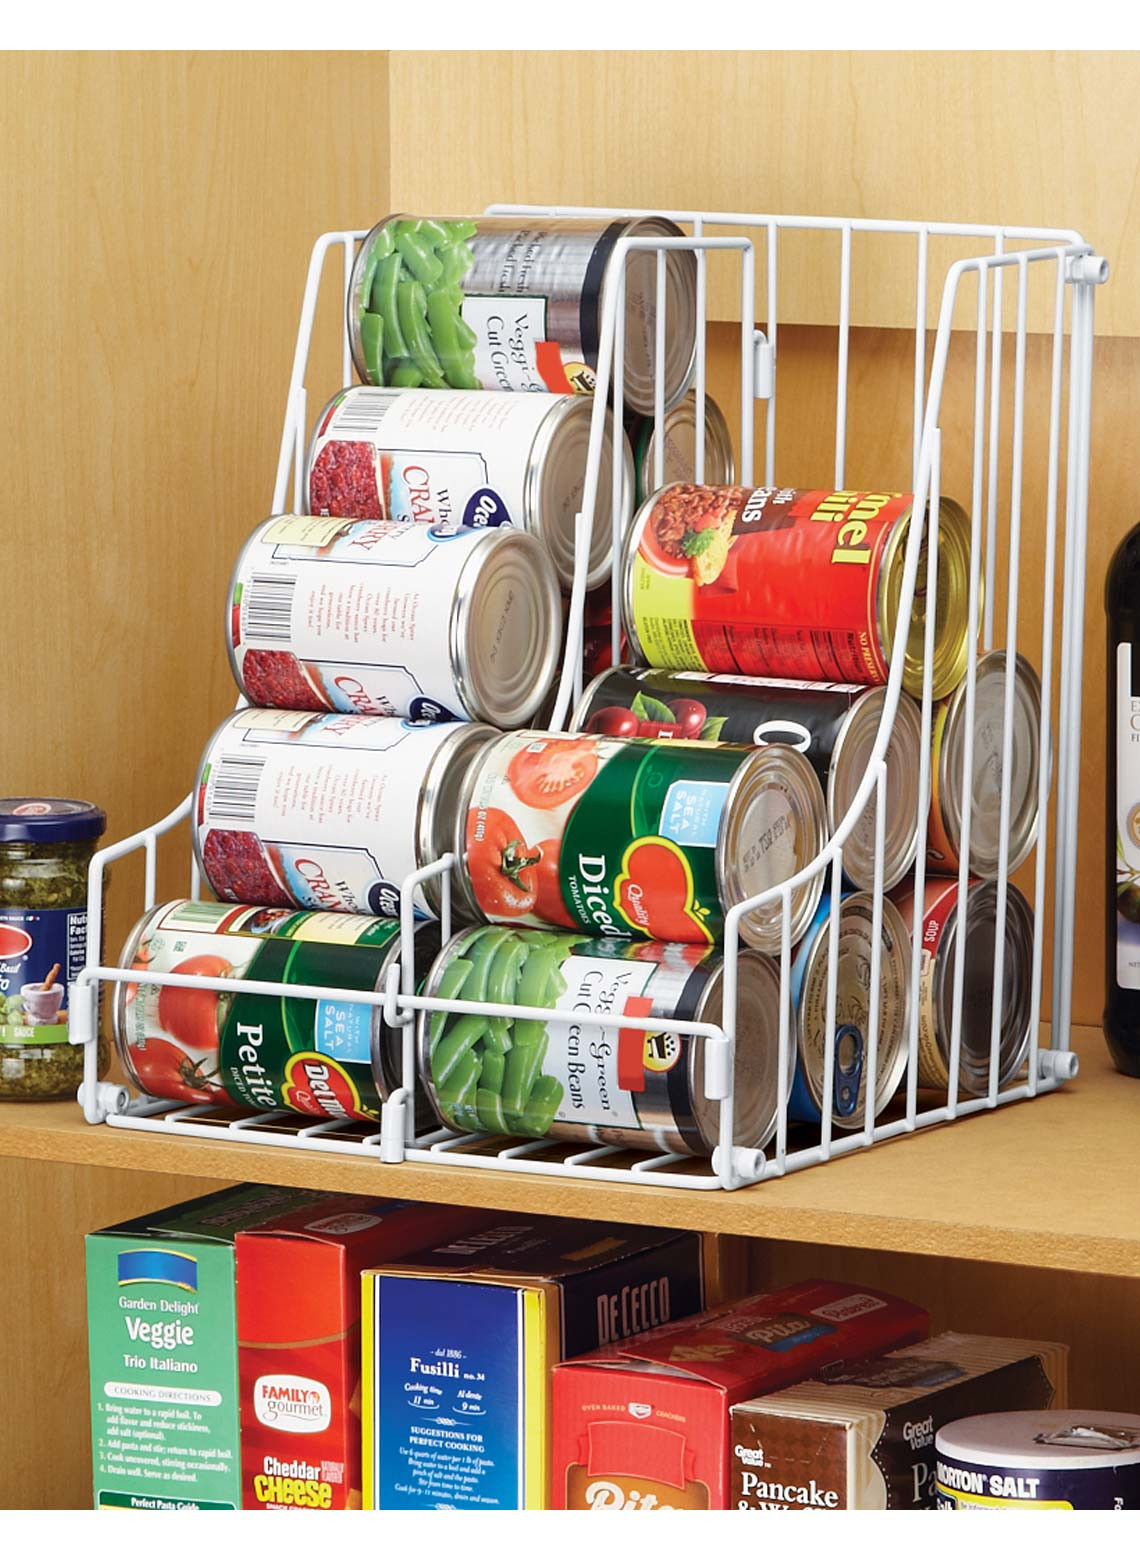 Best ideas about Pantry Can Organizer . Save or Pin Double Pantry Can Organizer Now.